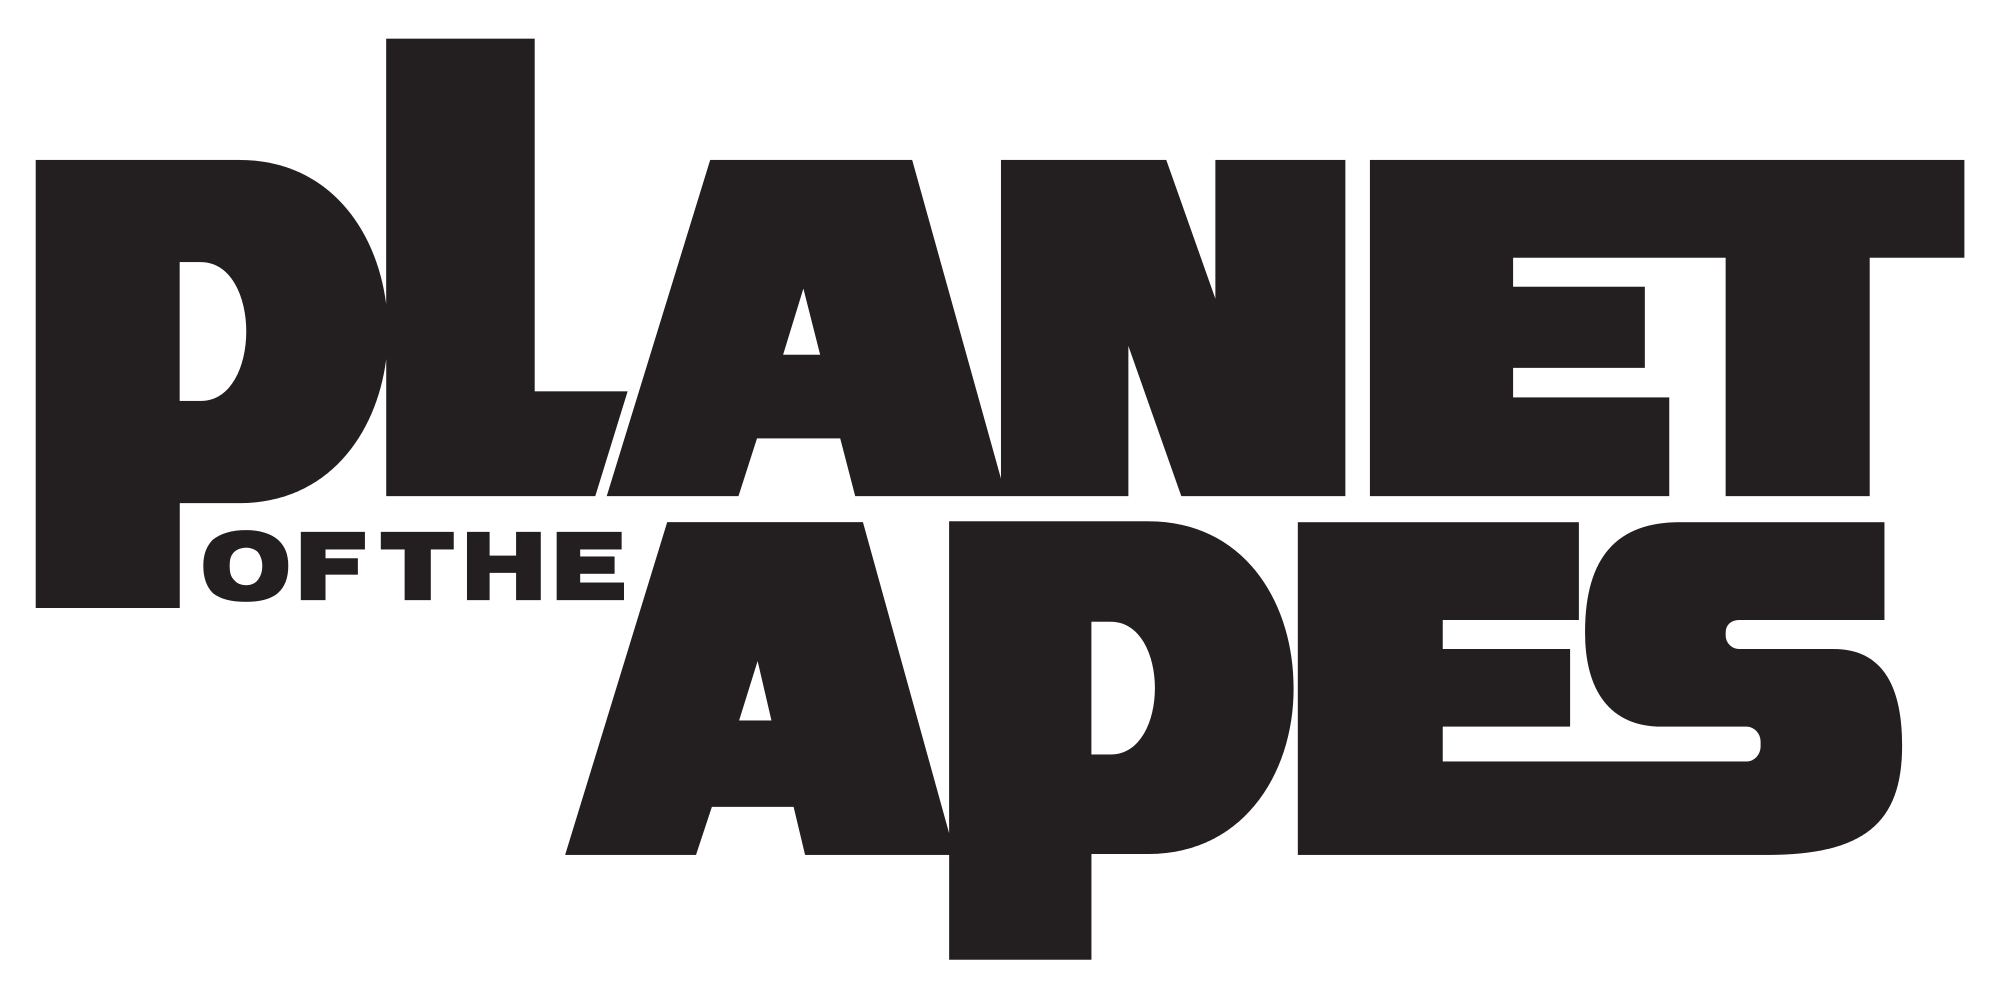 War for the planet of the apes logo png. Wikipedia